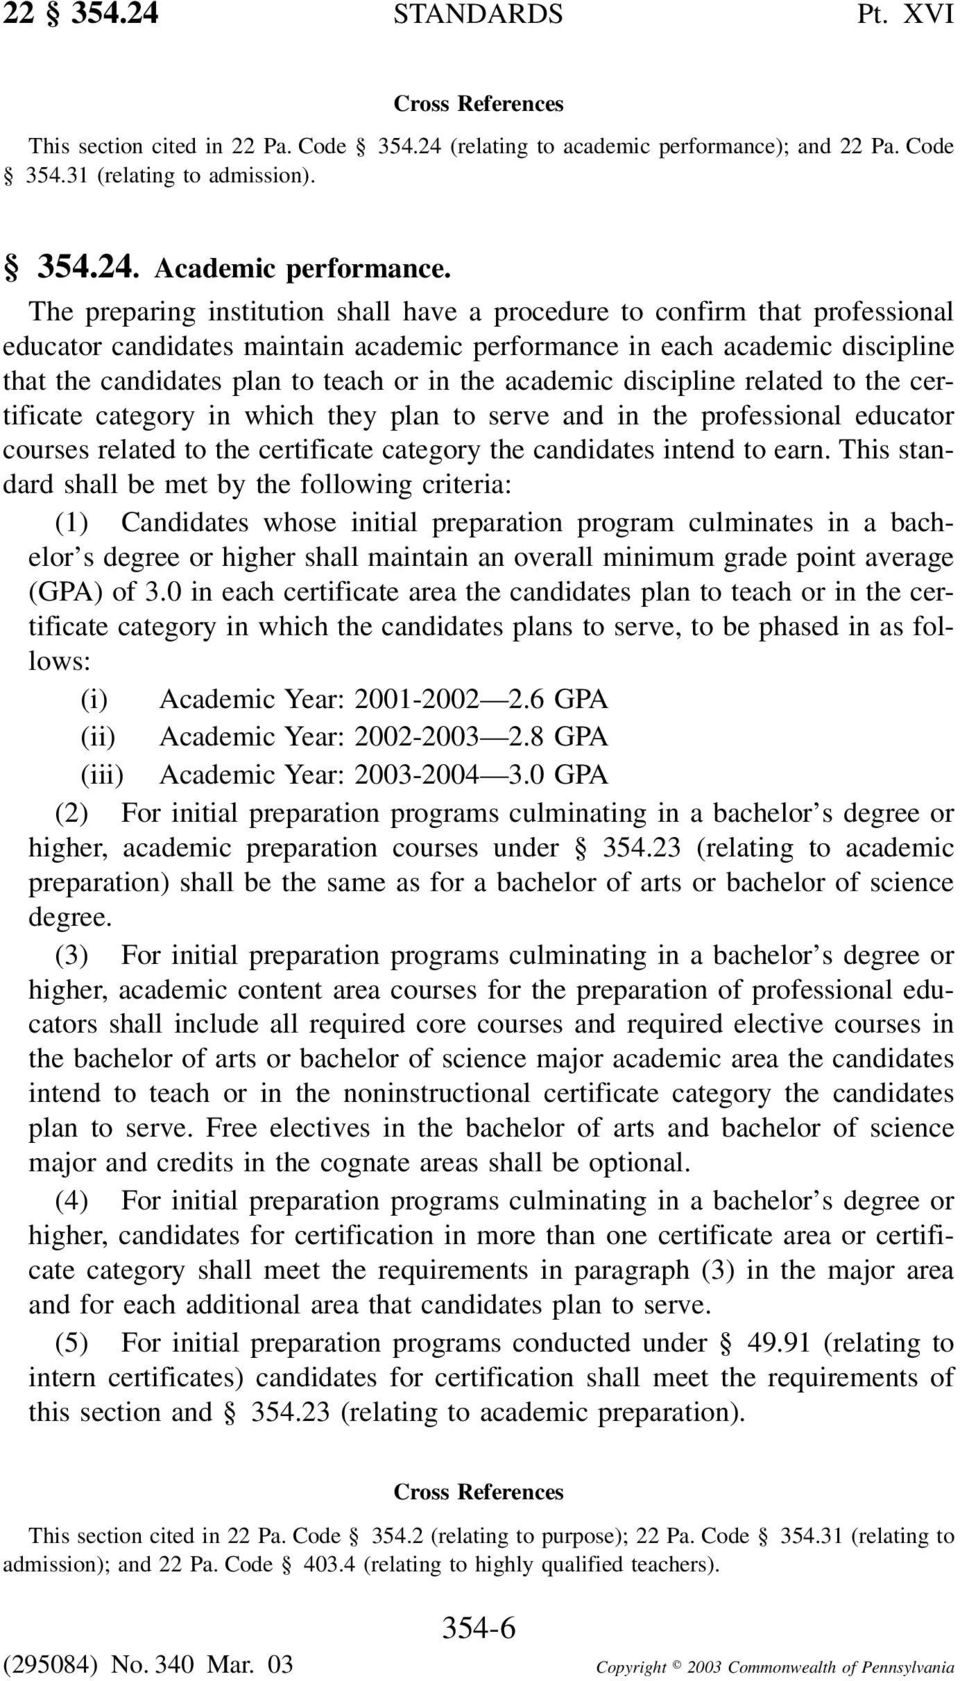 academic discipline related to the certificate category in which they plan to serve and in the professional educator courses related to the certificate category the candidates intend to earn.